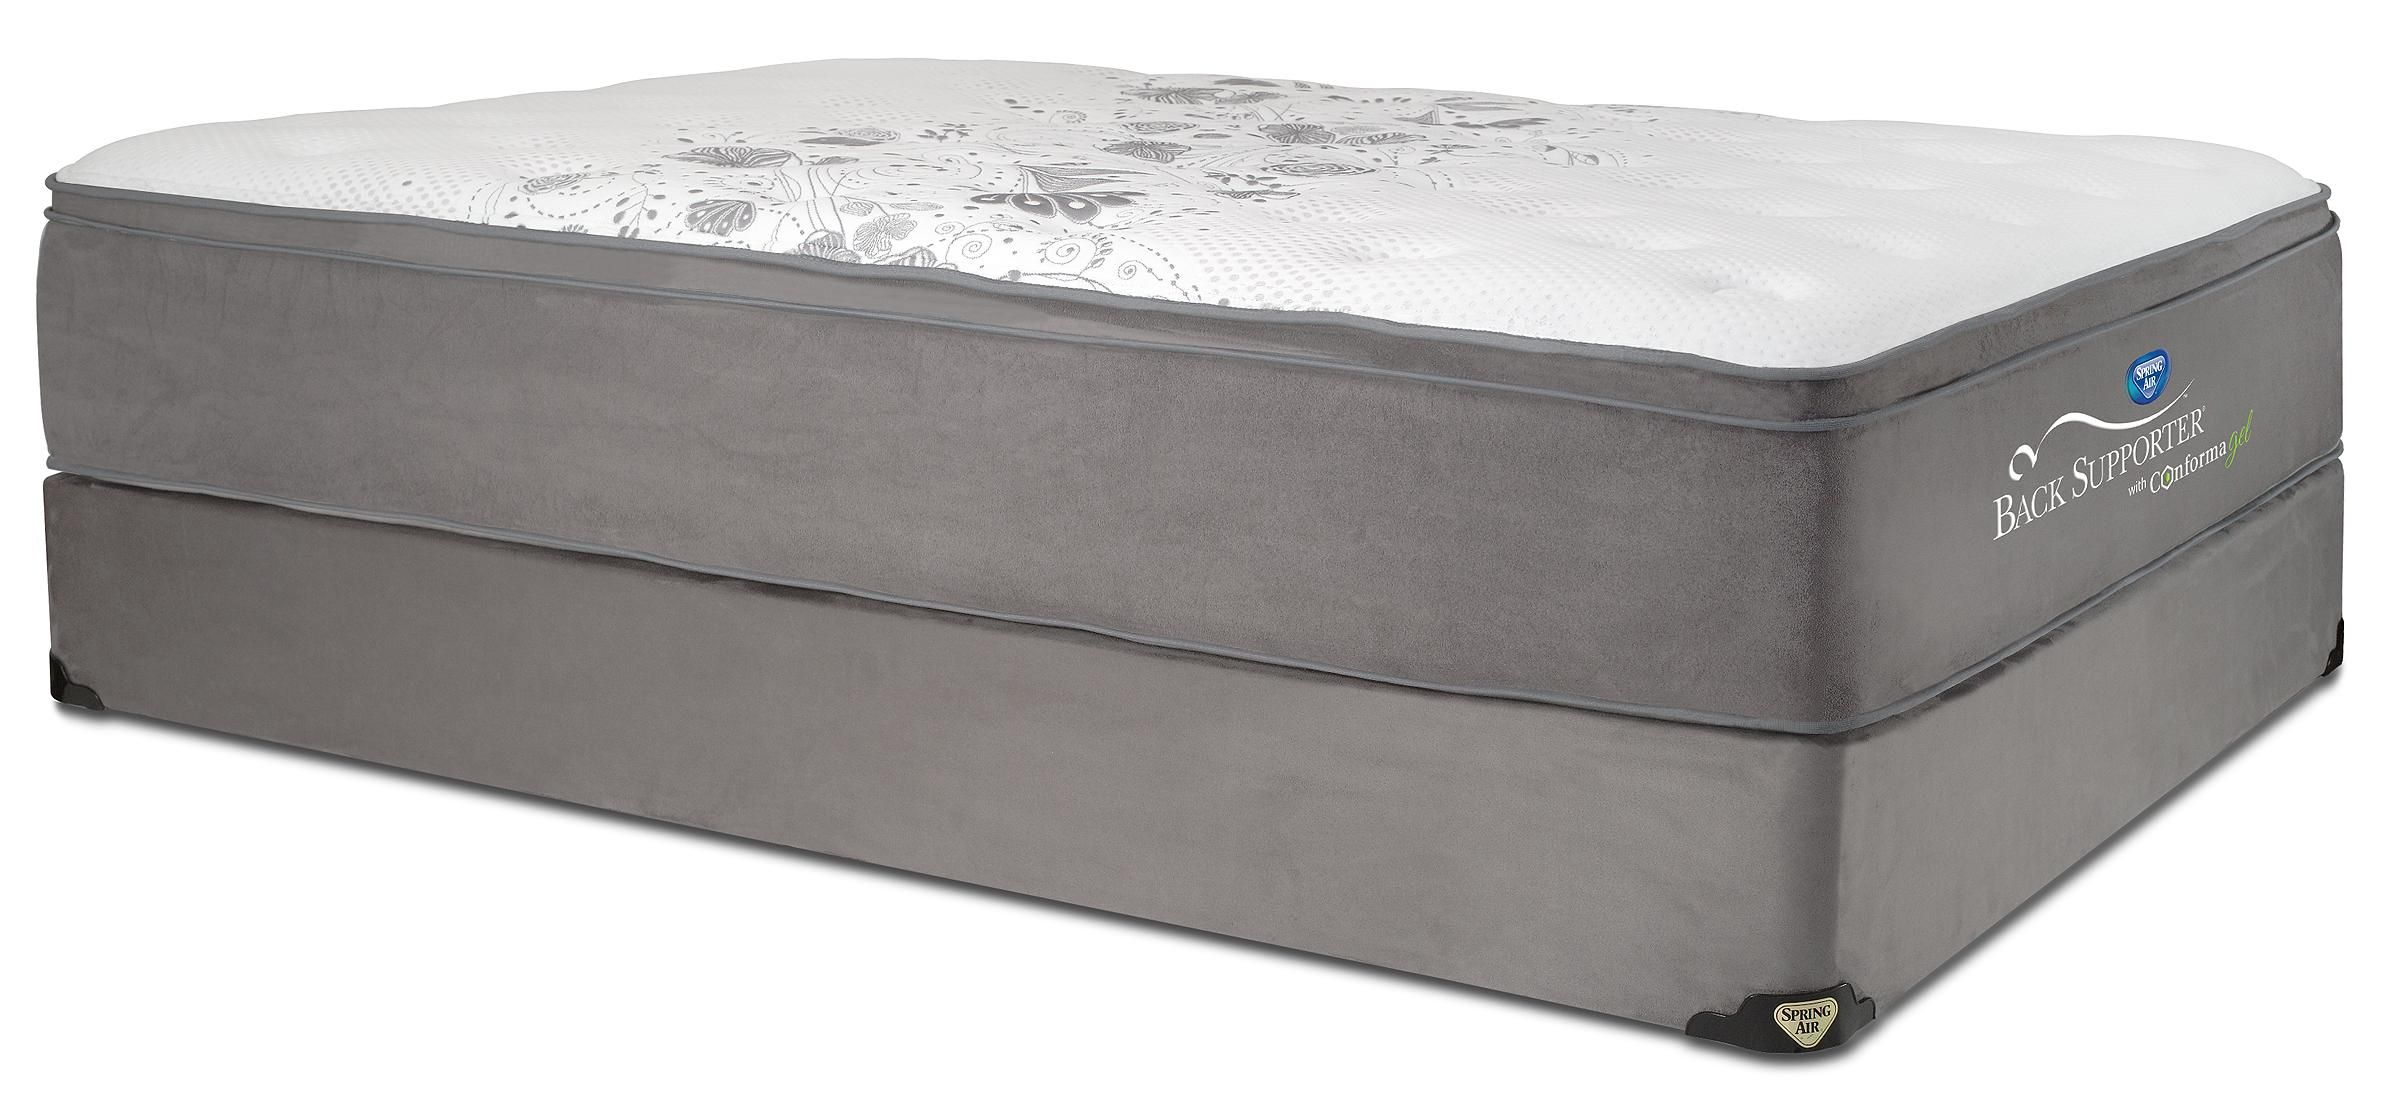 Back Supporter Presidential Queen Plush Hybrid Mattress By Spring Air